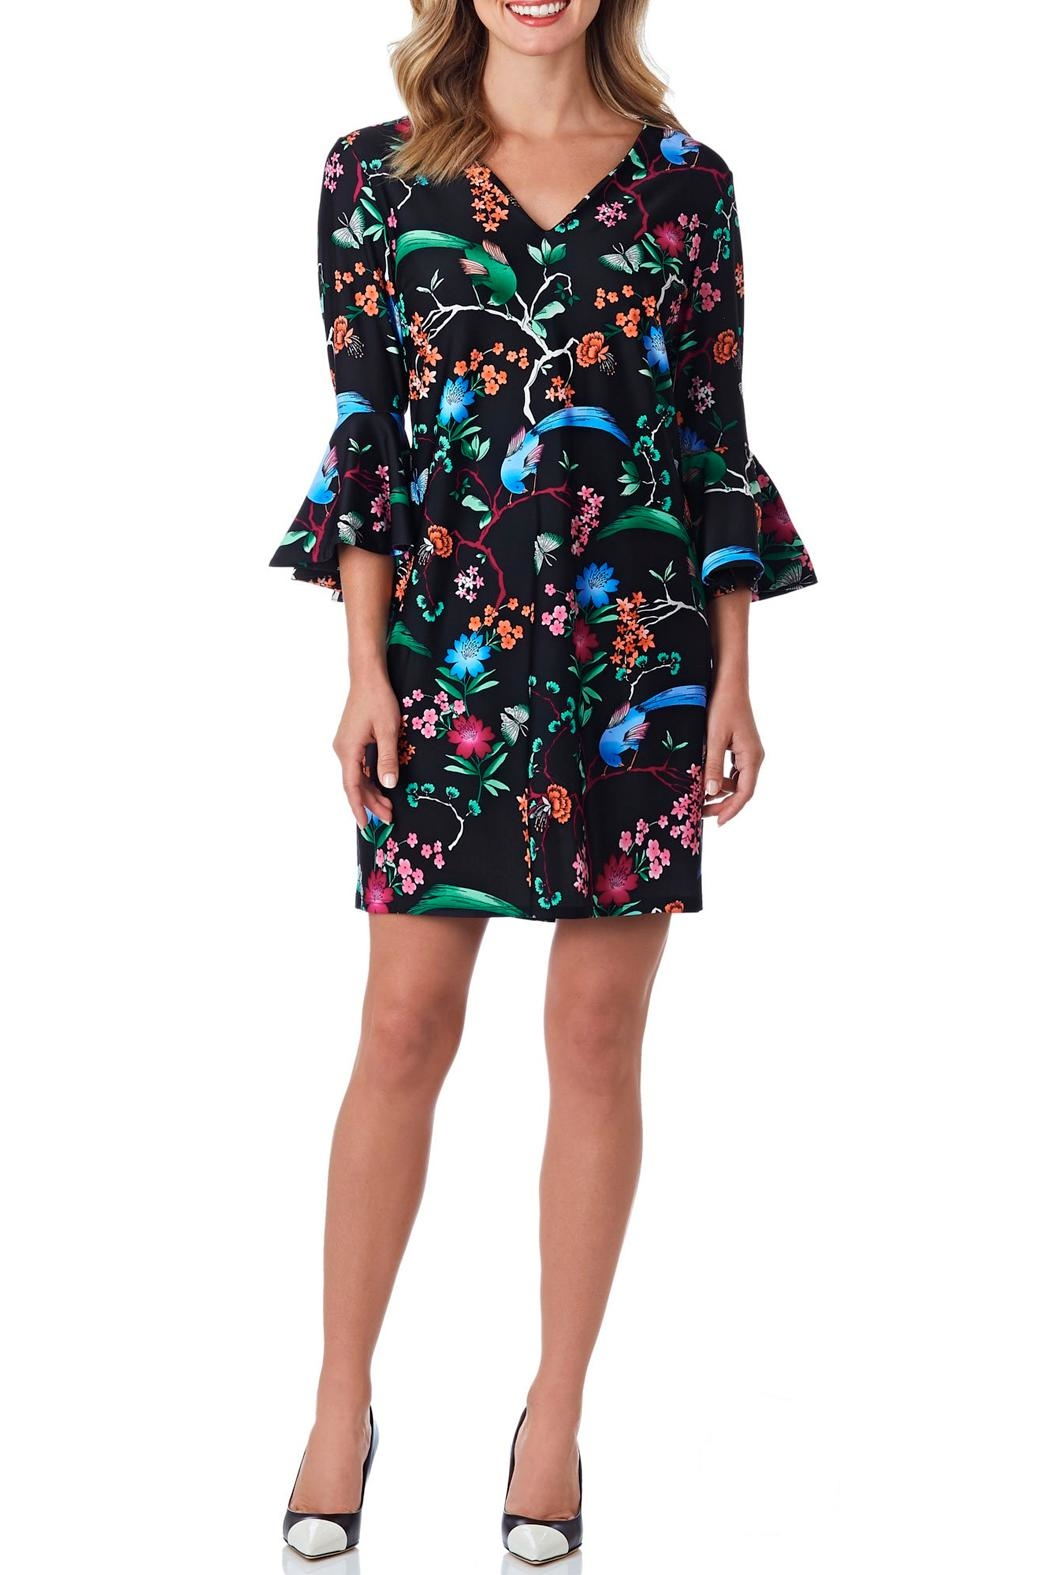 Jude Connally Lyla Flutter-Sleeve Dress - Main Image